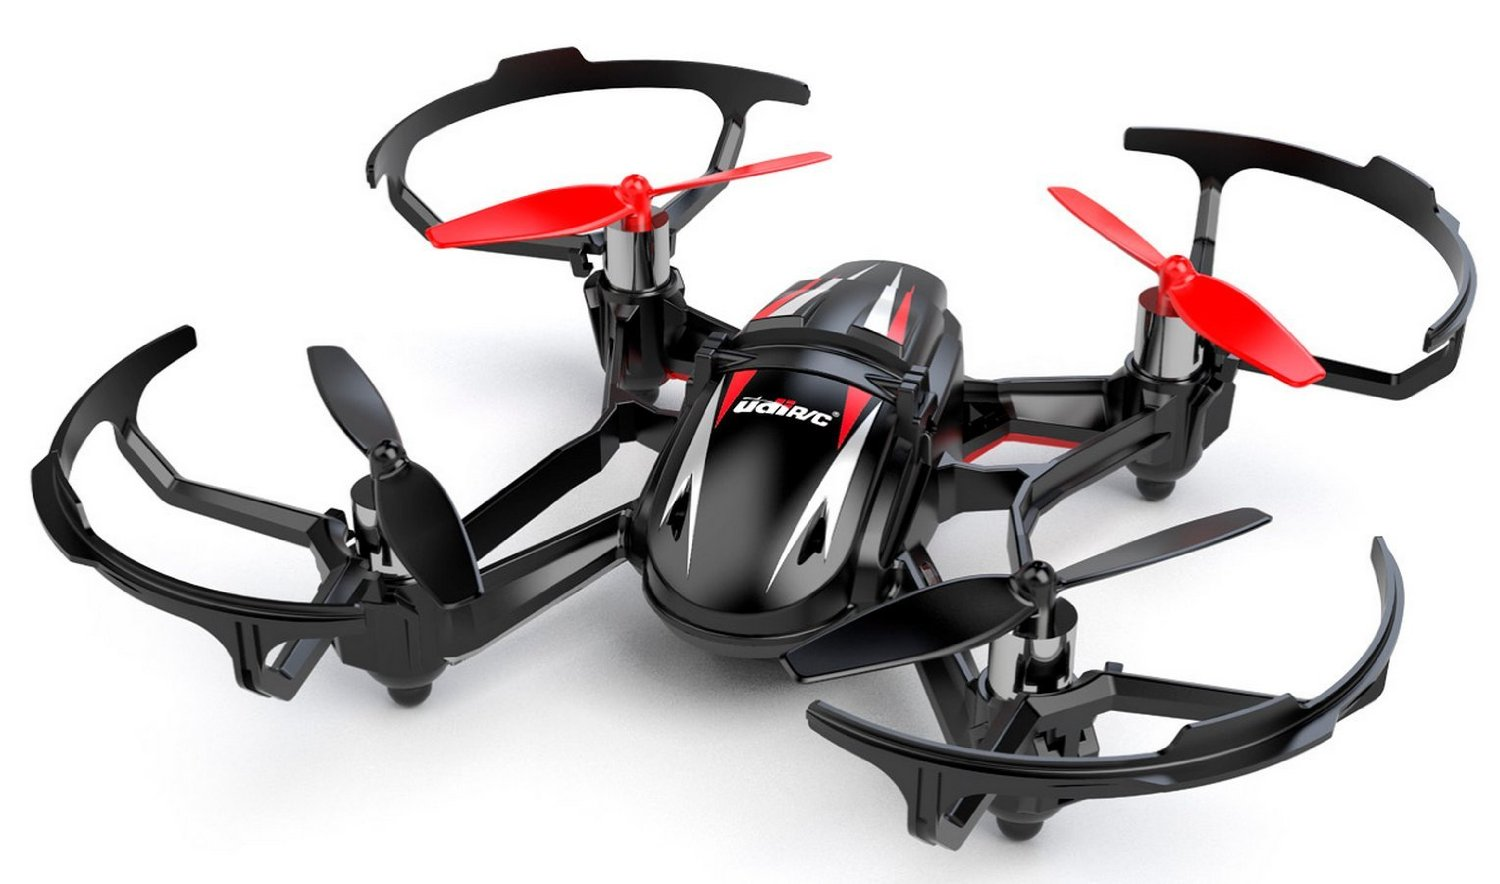 The Best Cheap Drones - UDI RC U27 FREE LOOP